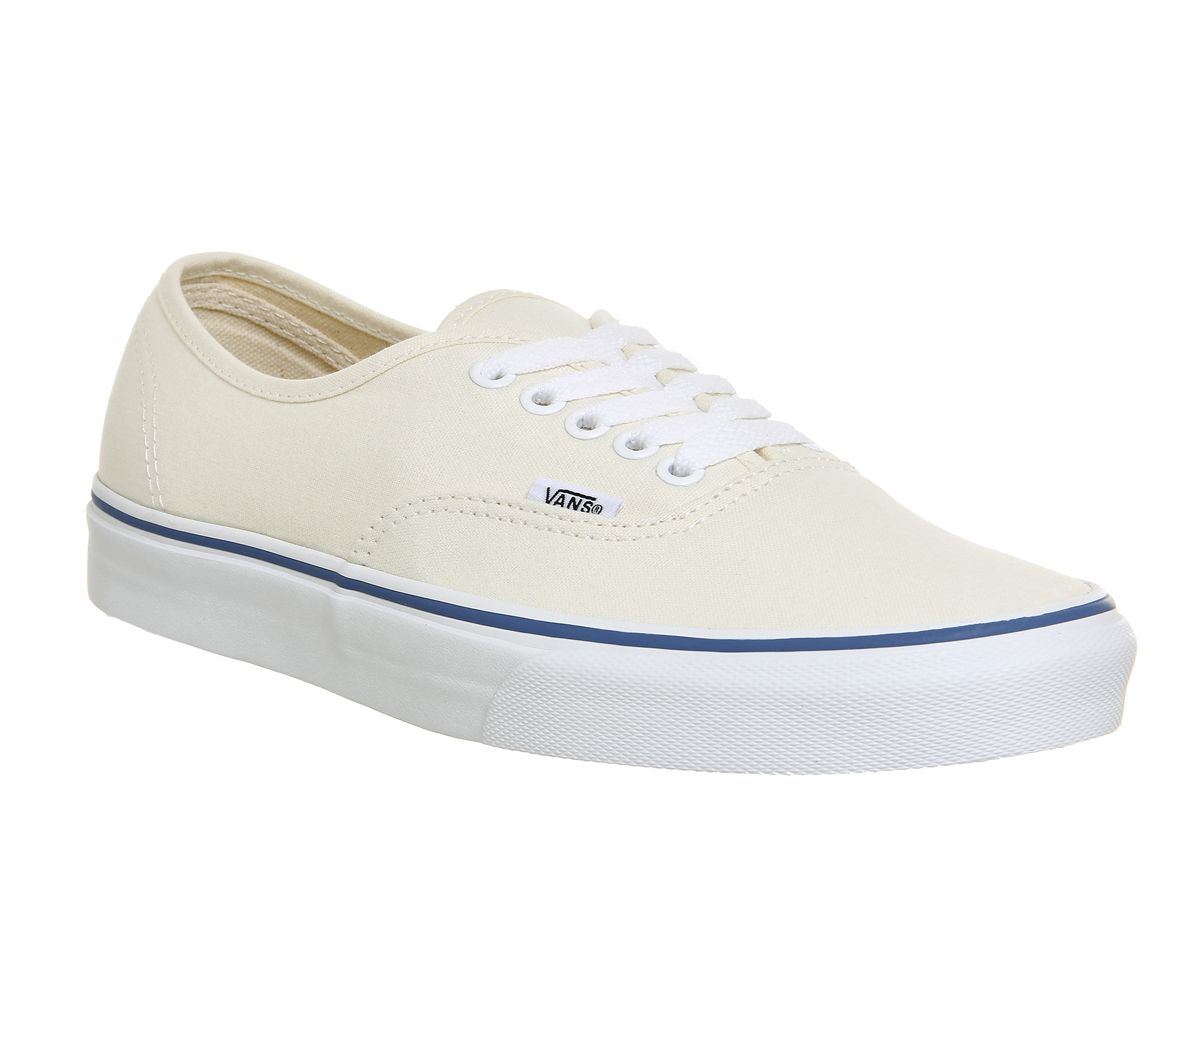 107f7731d9f8 Vans Authentic Trainers White - Unisex Sports